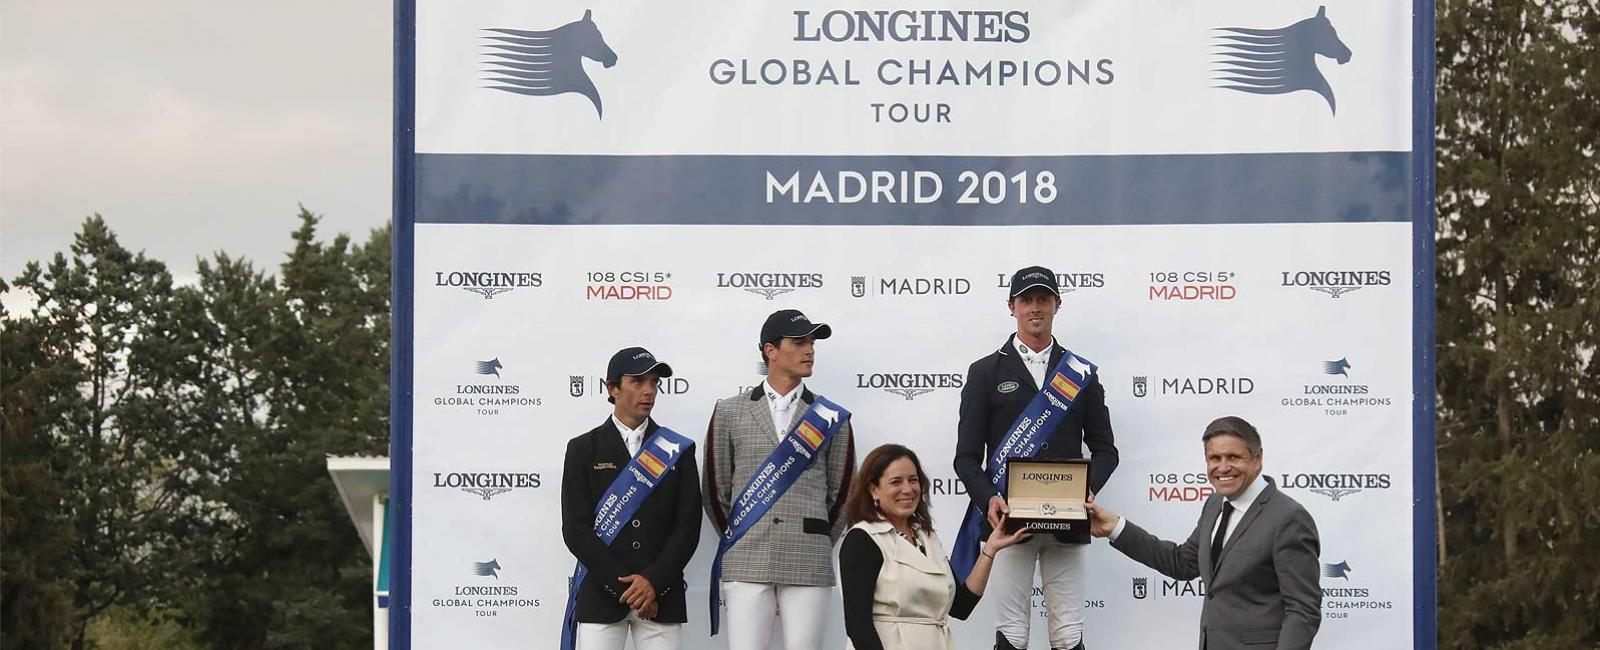 Jumping; Longines Global Champions Tour; Madrid; Ben Maher